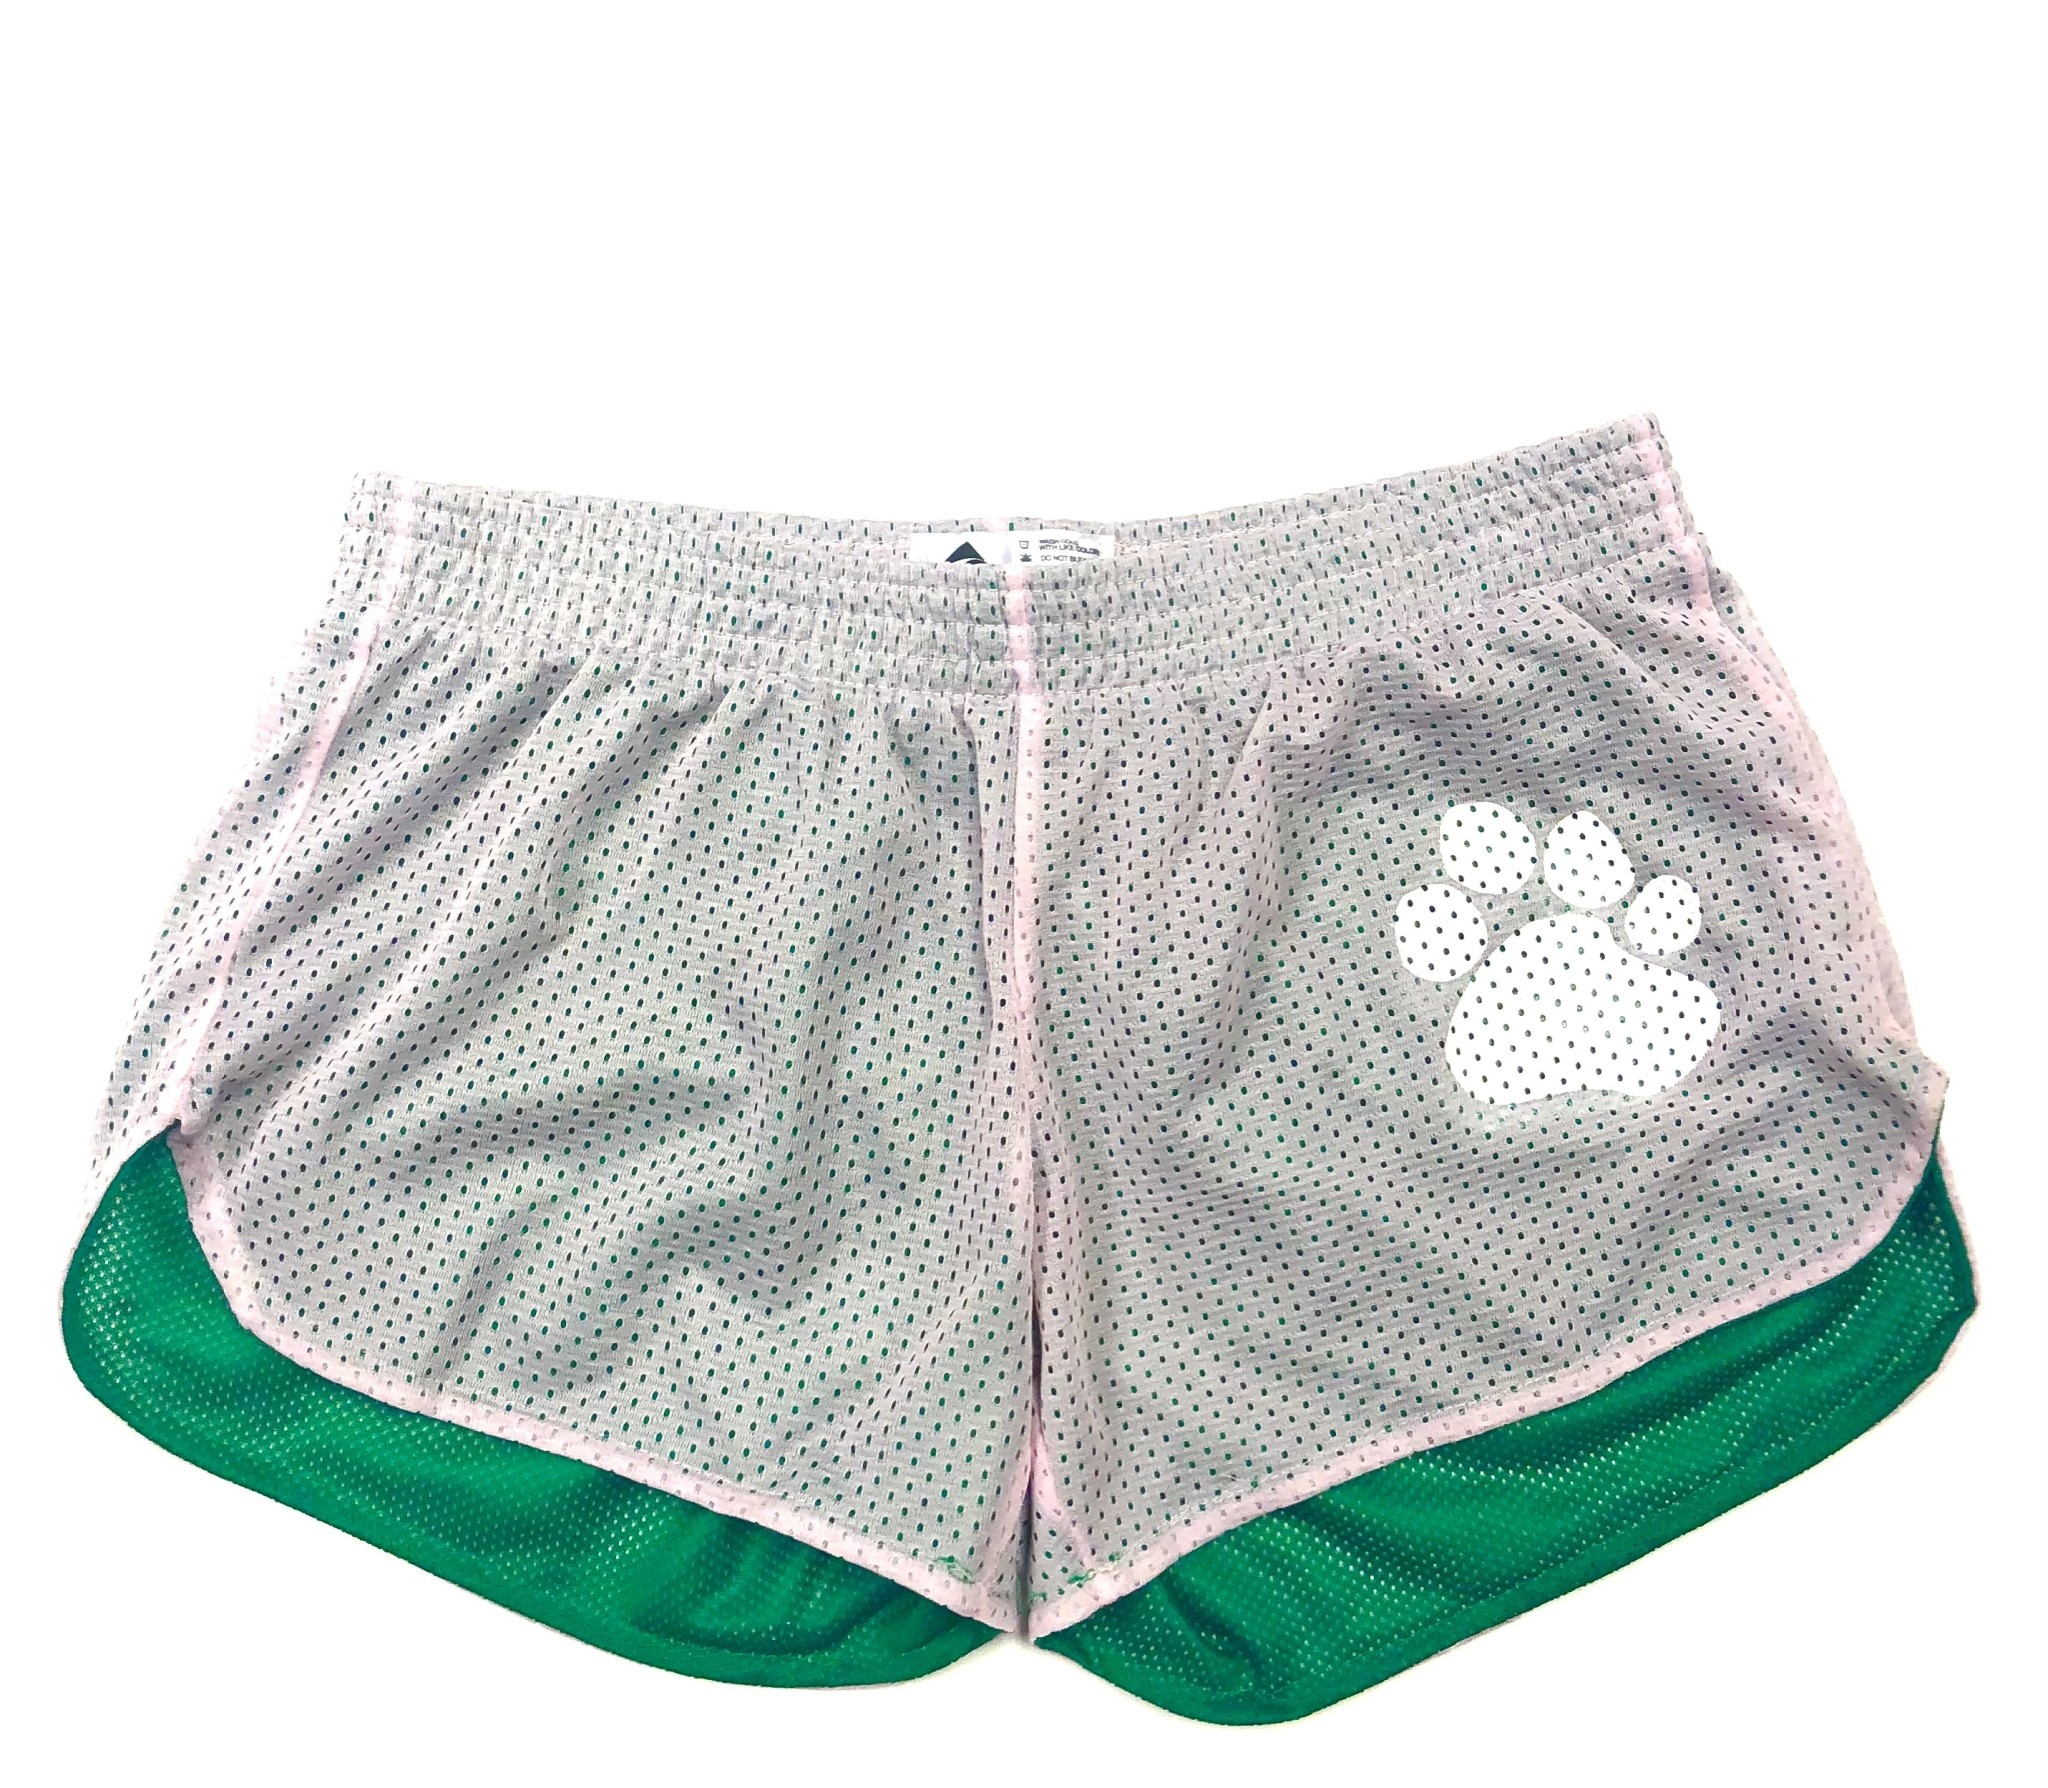 Forerunner-Pennant Shorts: Forerunner Youth Girls Pink with Paw